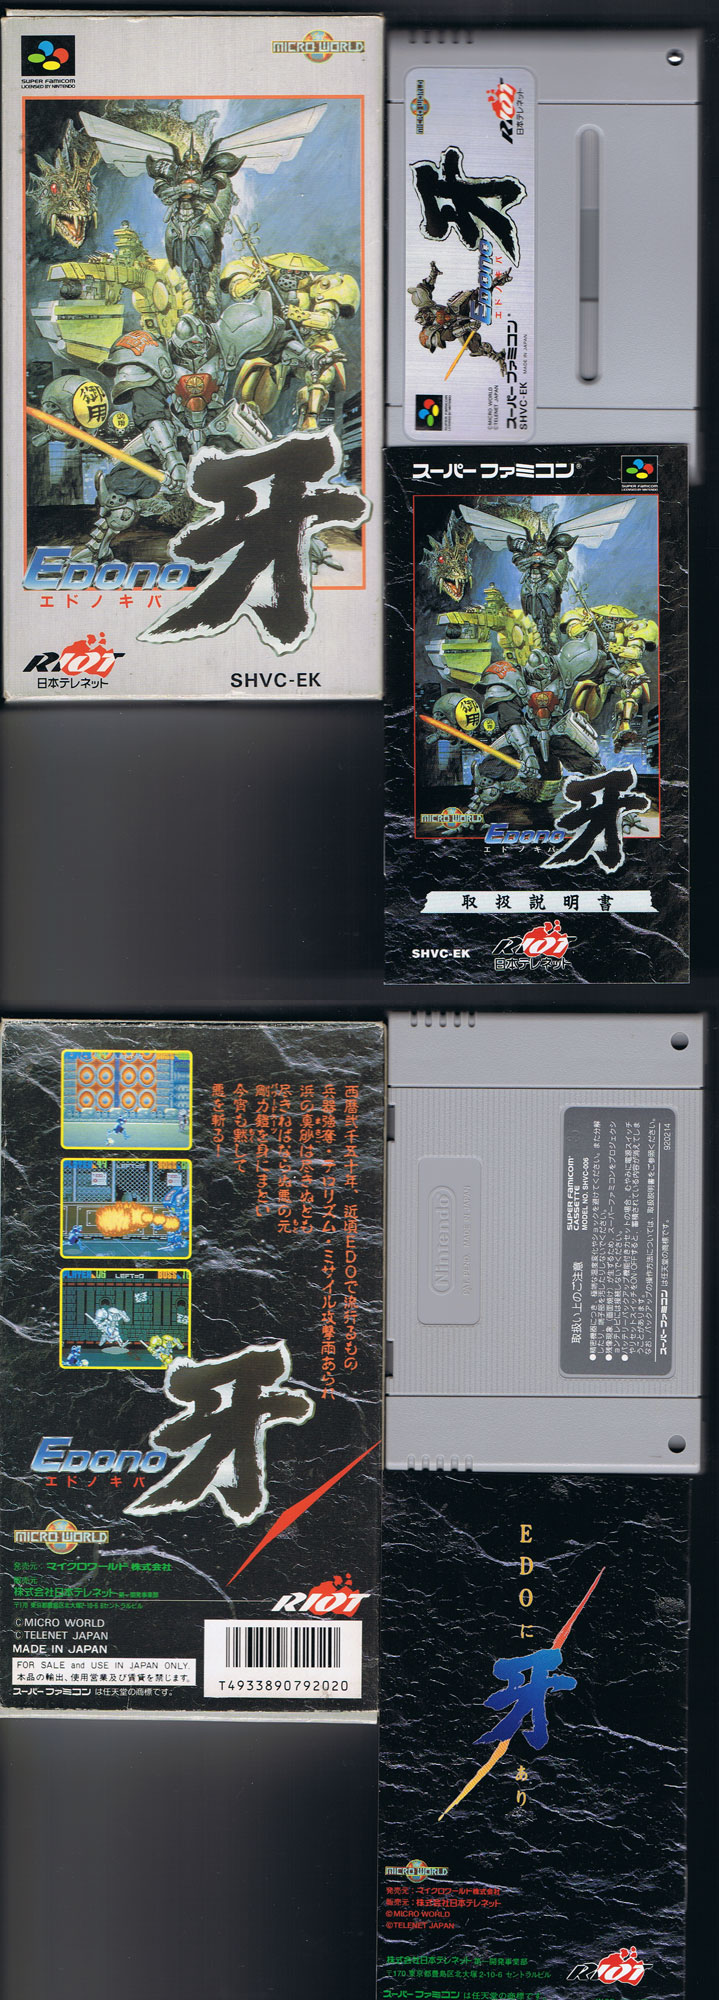 dating sims rom For love hina advance: shukufuku no kane wa harukana on the game boy advance, a reader review titled a dating simulator for love hina fans still, you can manage to find the rom file for this game, you can download a patch that makes it english, which is what i had to do so once the translation.